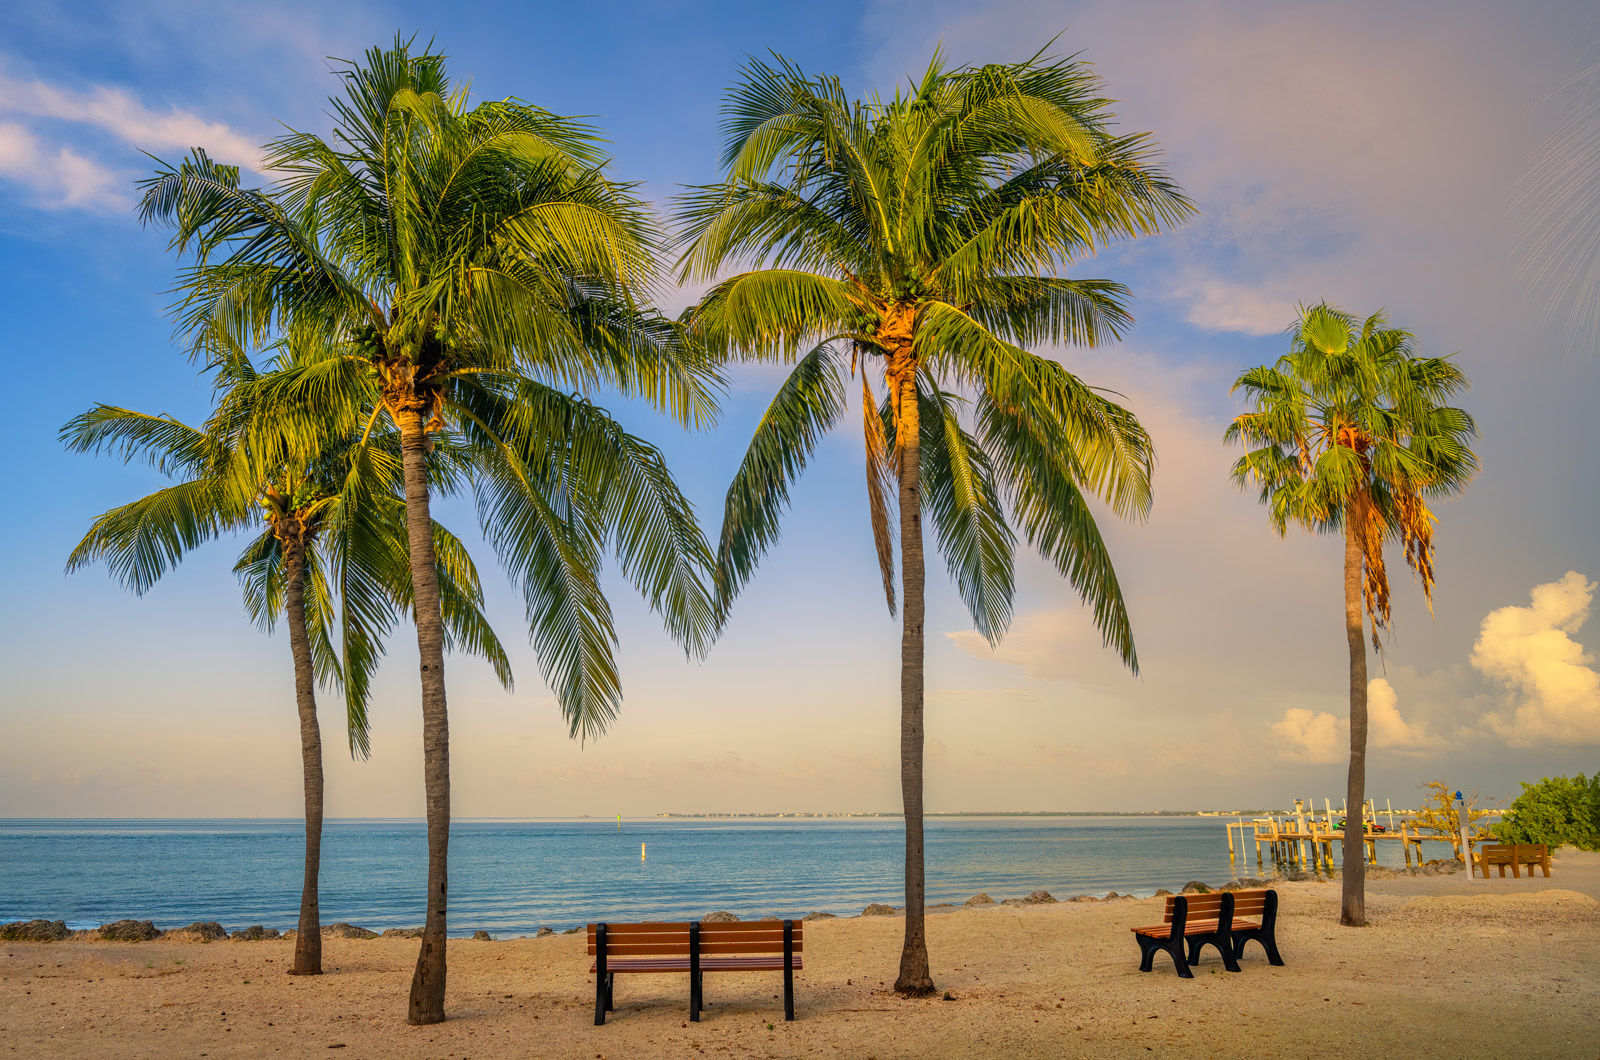 A Limited Edition, Fine Art photograph of palm trees in early morning light on the beach in the Florida Keys. Available as a...